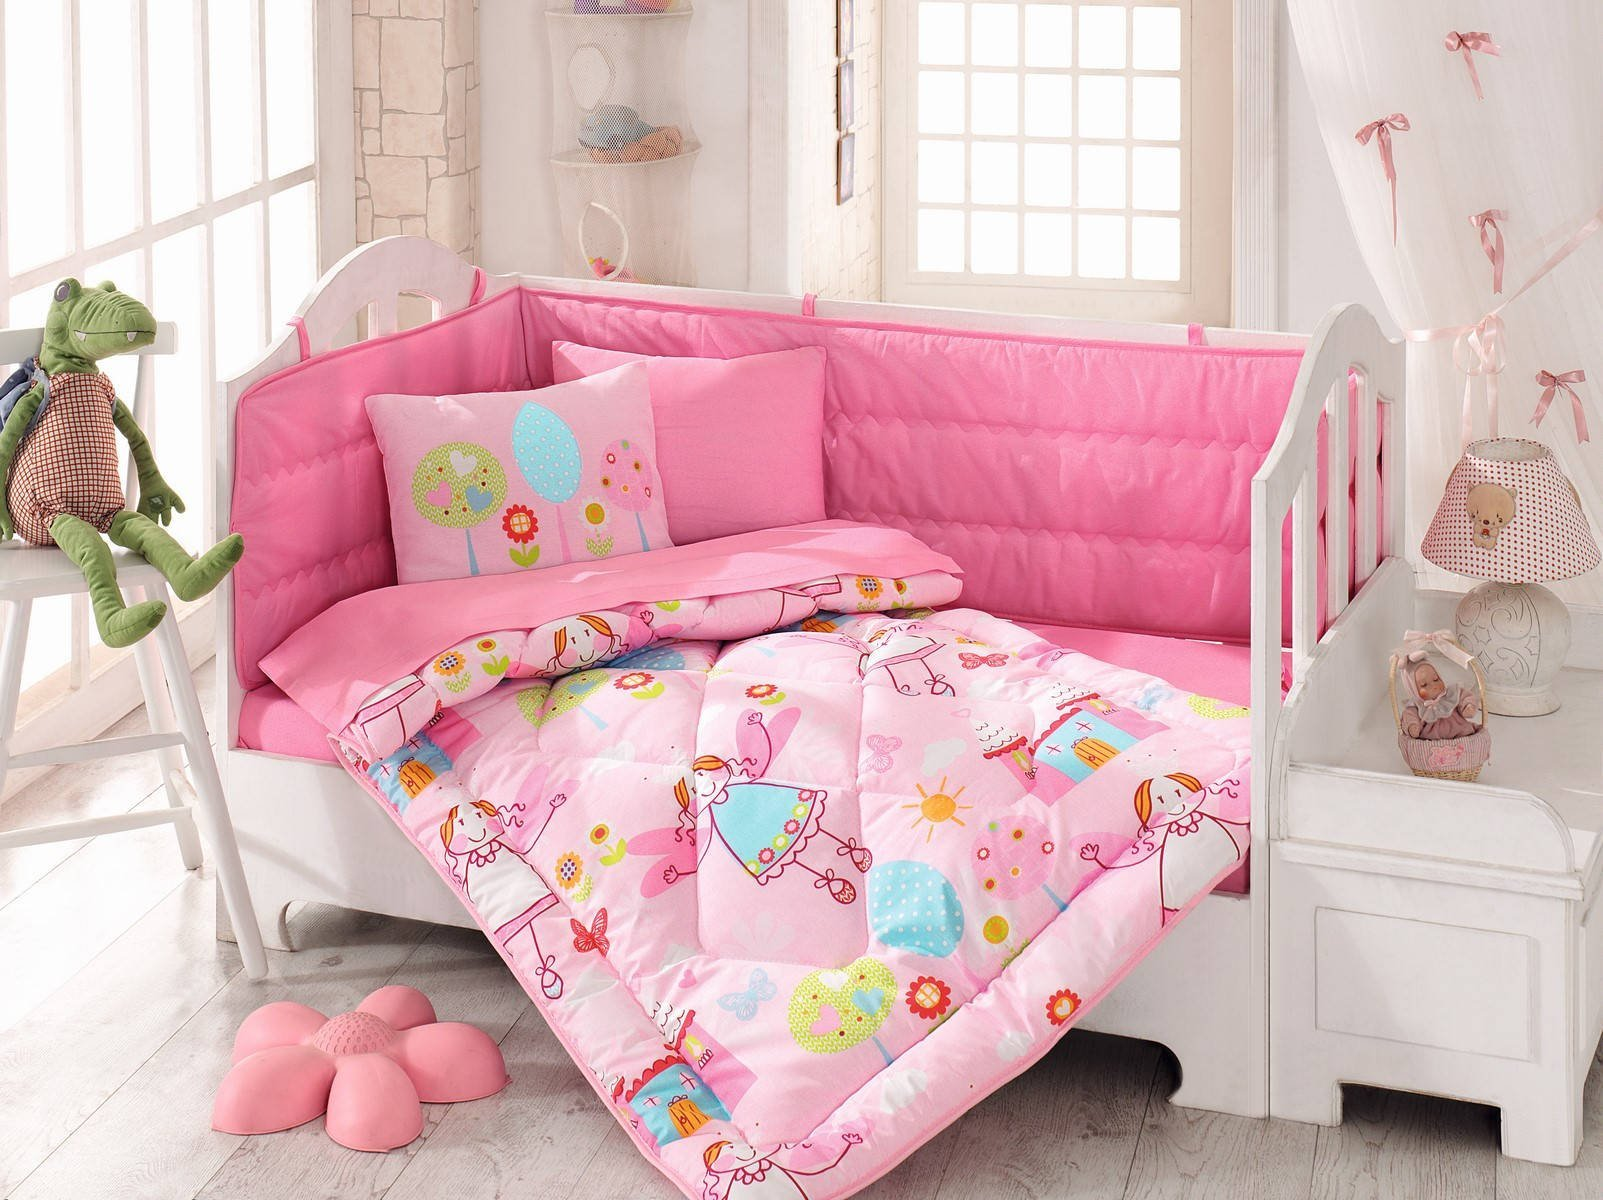 LaModaHome 6 Pcs Luxury Soft Colored Bedroom Bedding 100% Cotton Ranforce Baby Sleep Set Quilt Protector/Soft Relaxing Comfortable Pattern Design Pink Sweet/Baby Bed Size with Flat Seet